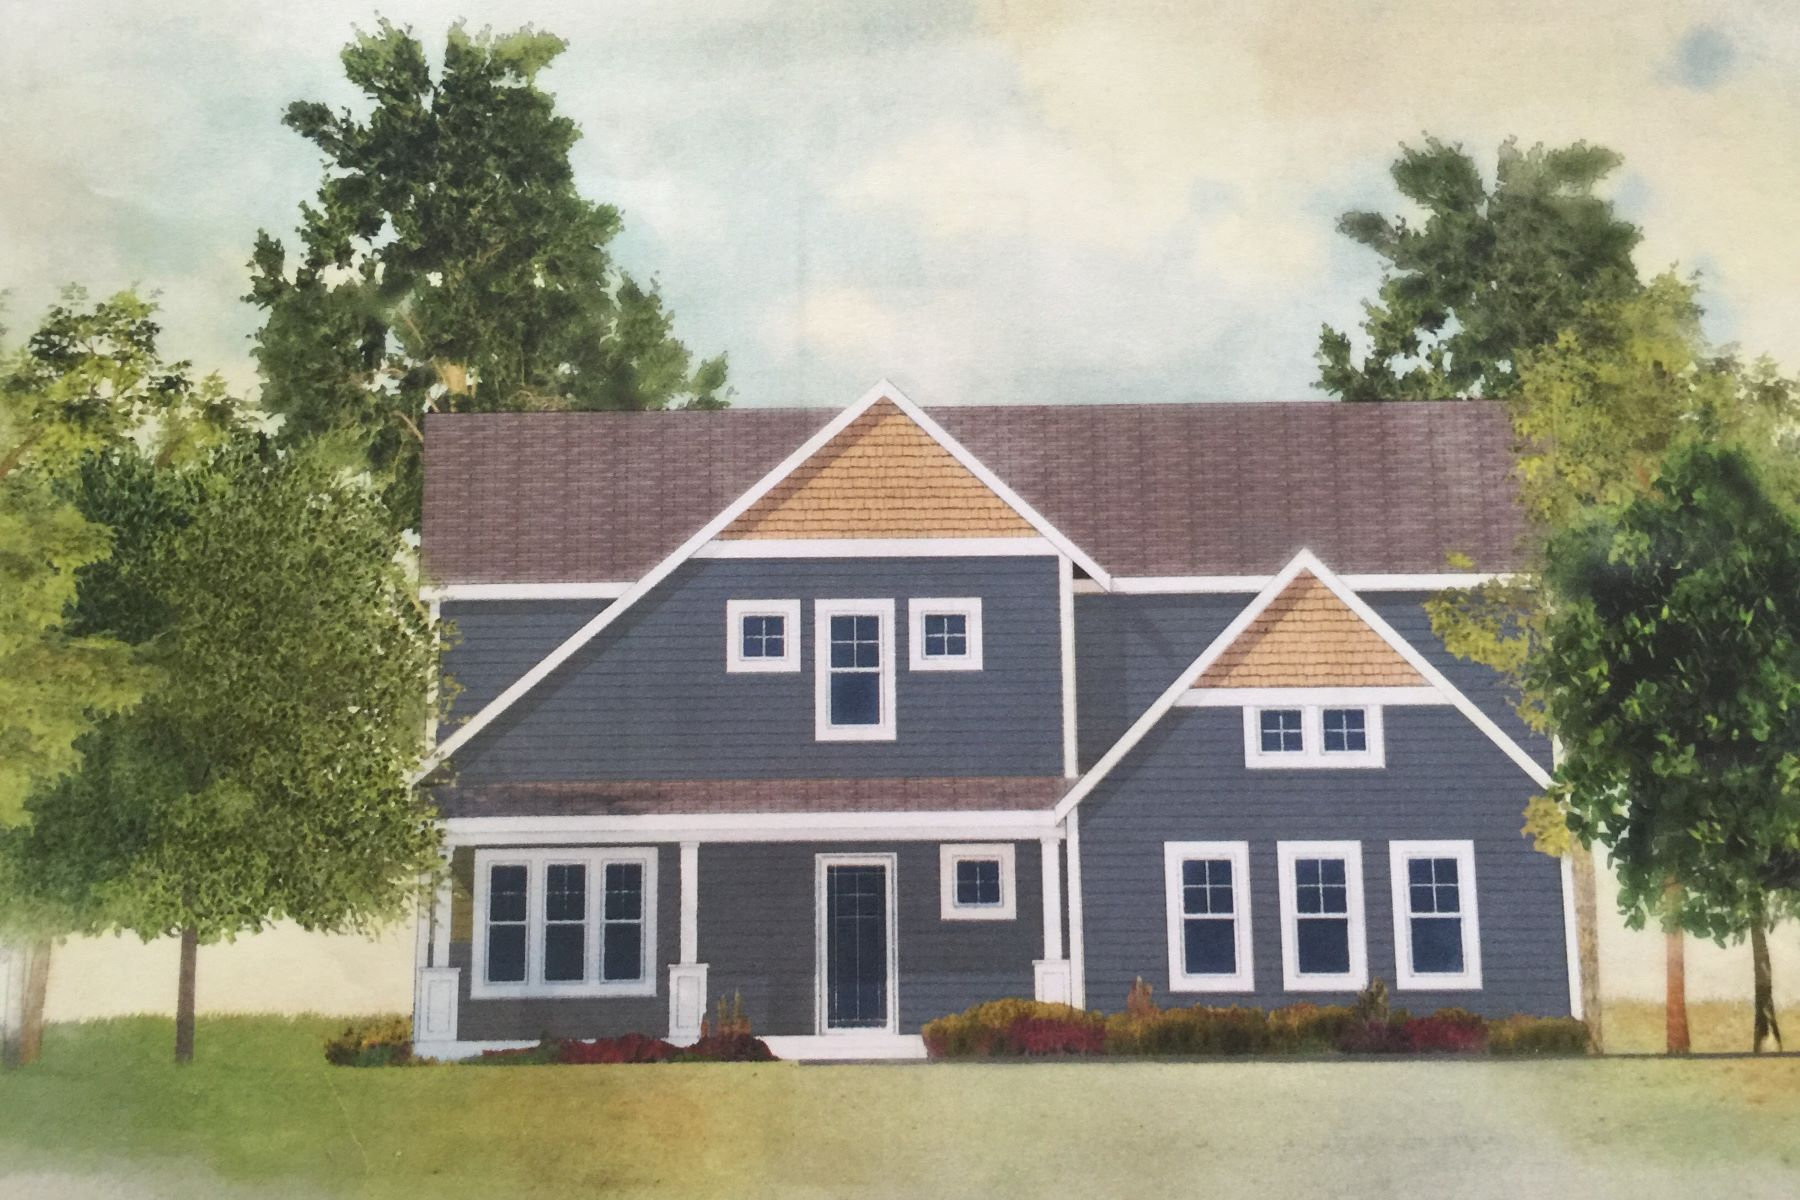 Casa Unifamiliar por un Venta en Autumn Ridge Development 4 Autumn Ridge Westbrook, Connecticut, 06498 Estados Unidos